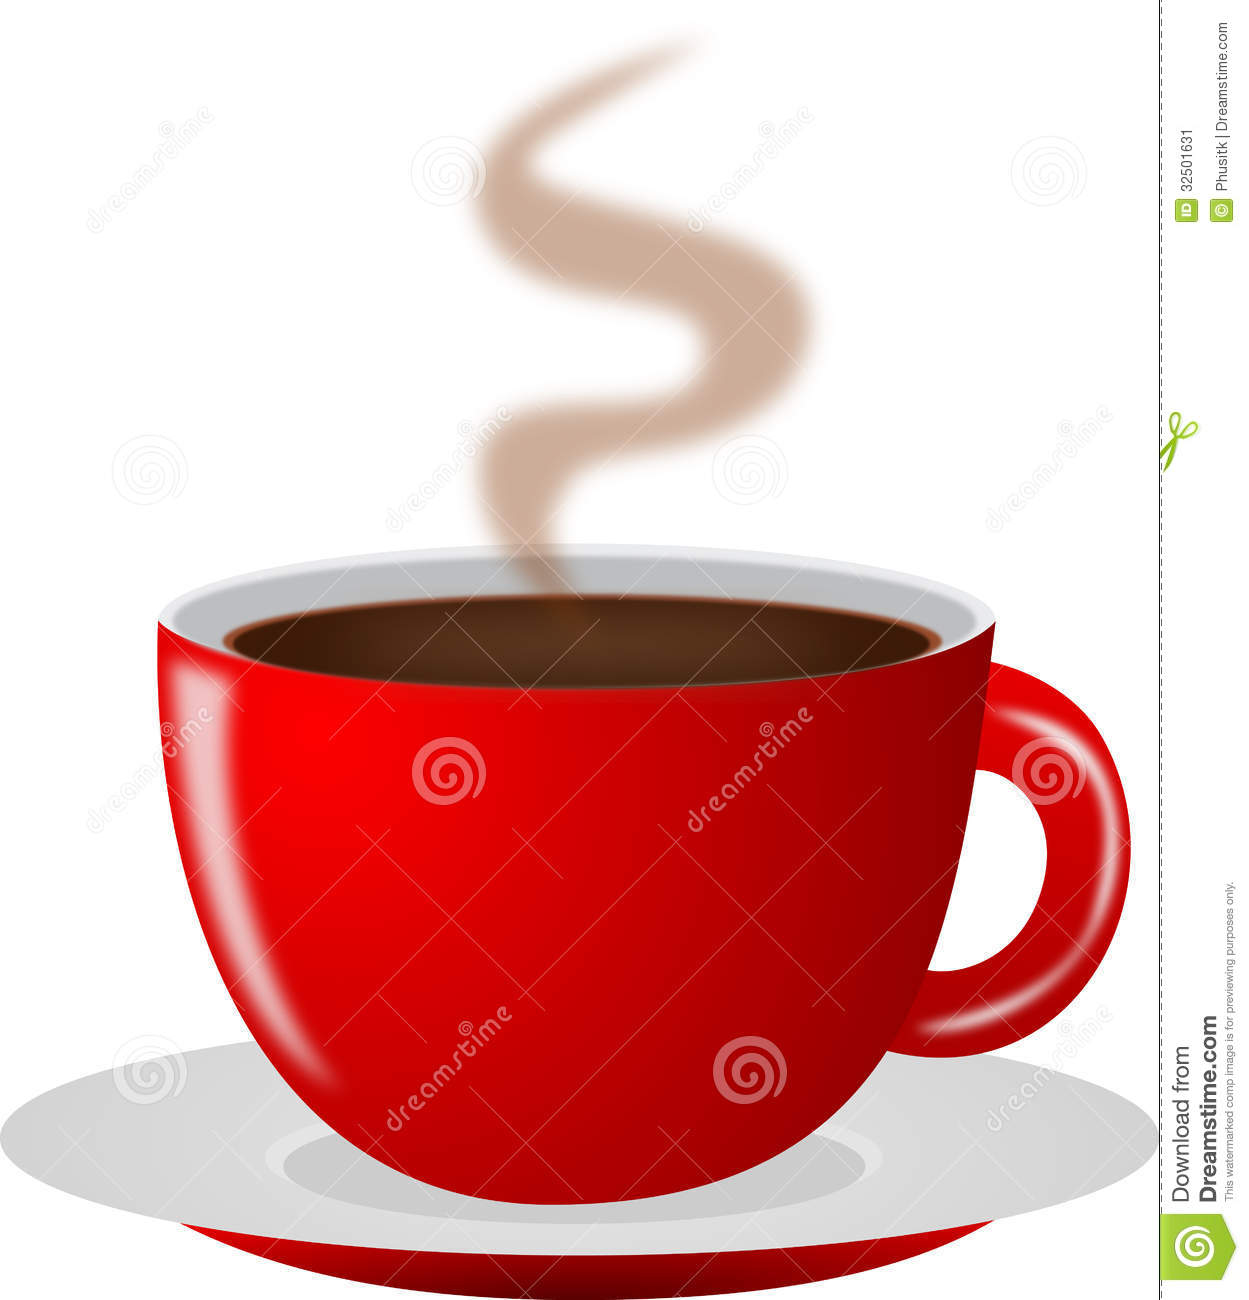 Red Hot Coffee Cup Stock Image - Image: 32501631